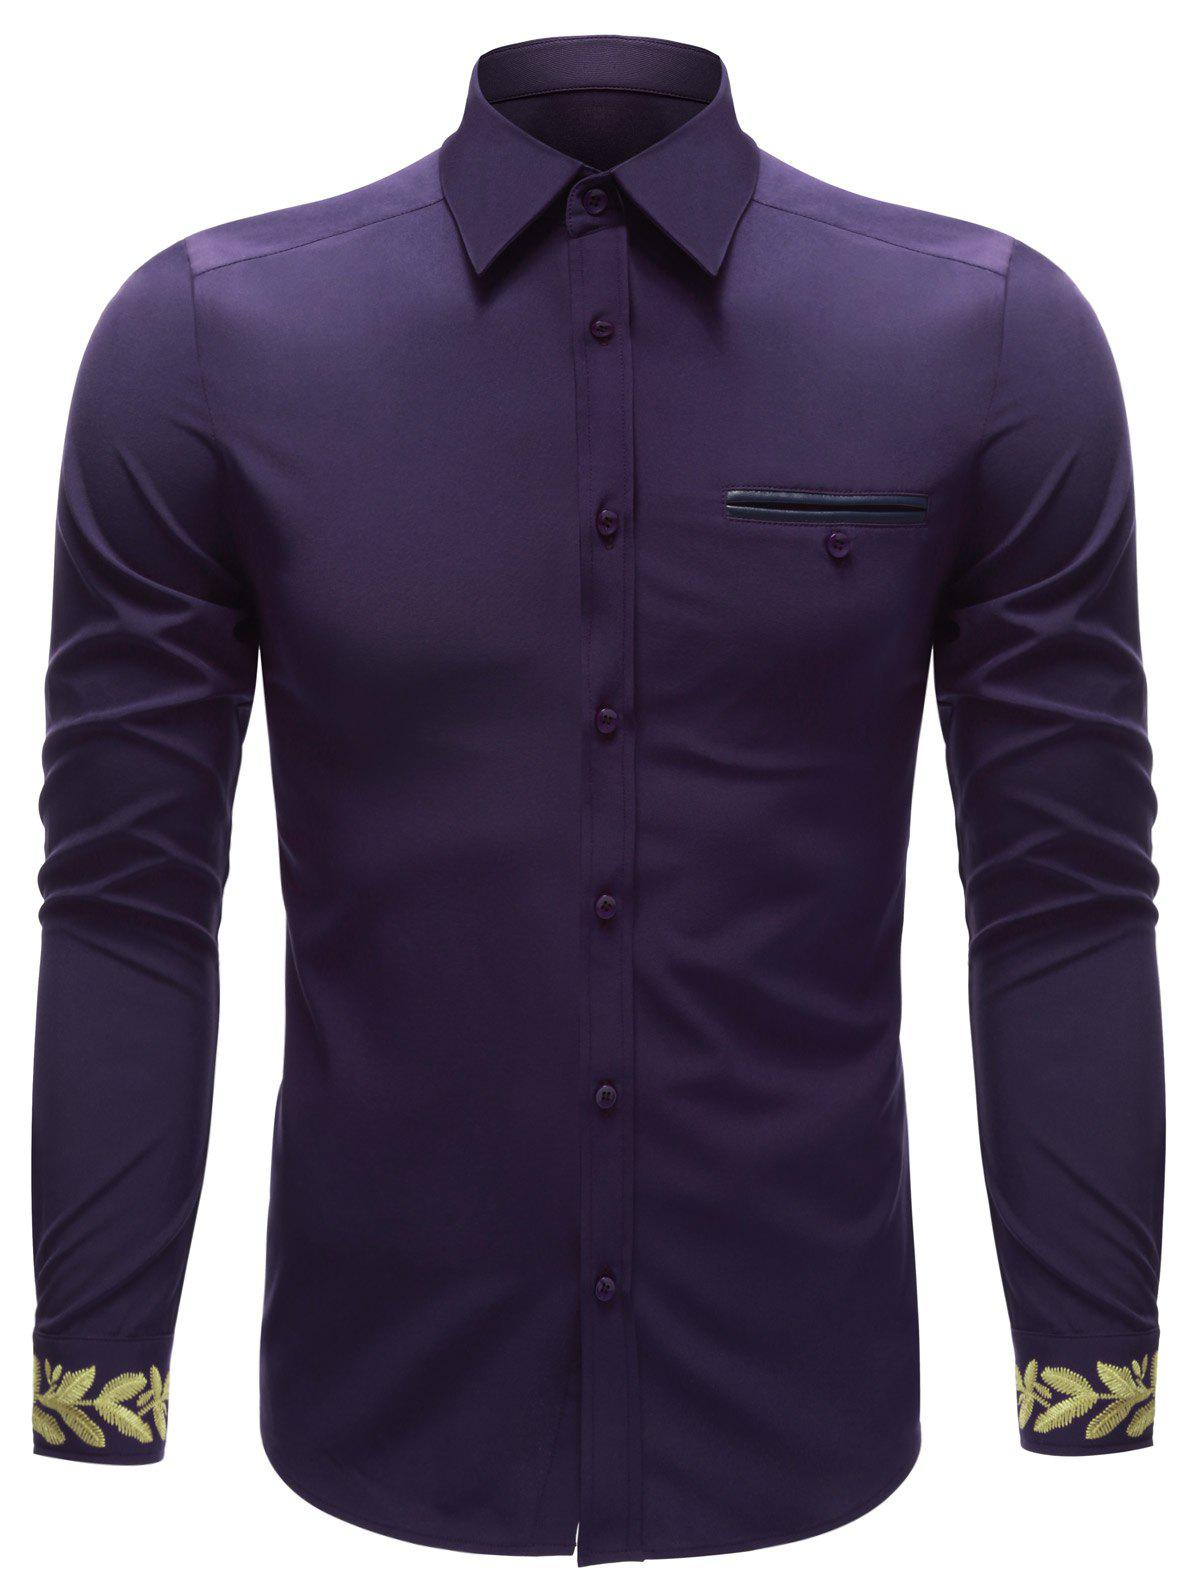 Breast Pocket Embroidered Cuff Button Up ShirtMen<br><br><br>Size: XL<br>Color: PURPLE